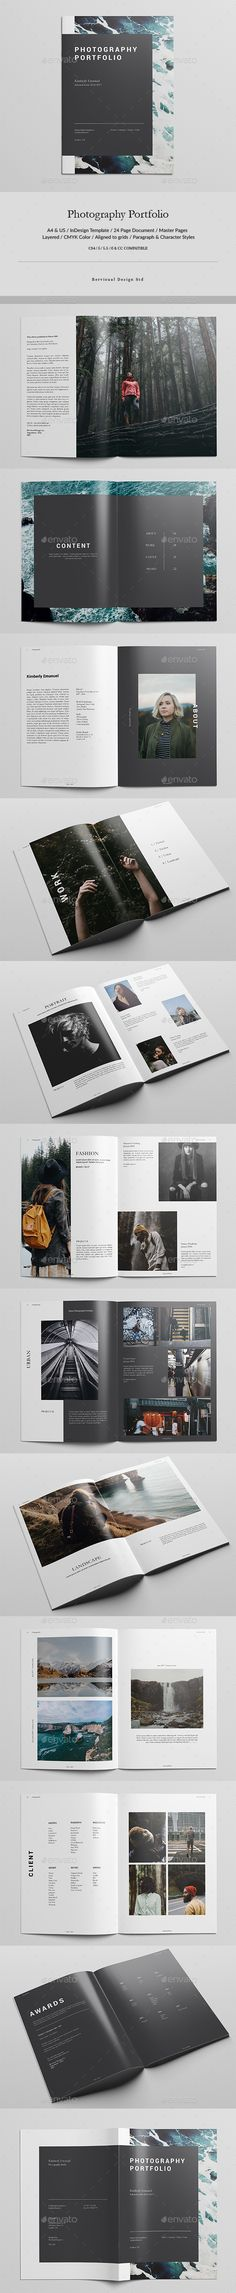 Photography Portfolio — InDesign INDD #editorial design #us letter • Download ➝ https://graphicriver.net/item/photography-portfolio/19746744?ref=pxcr